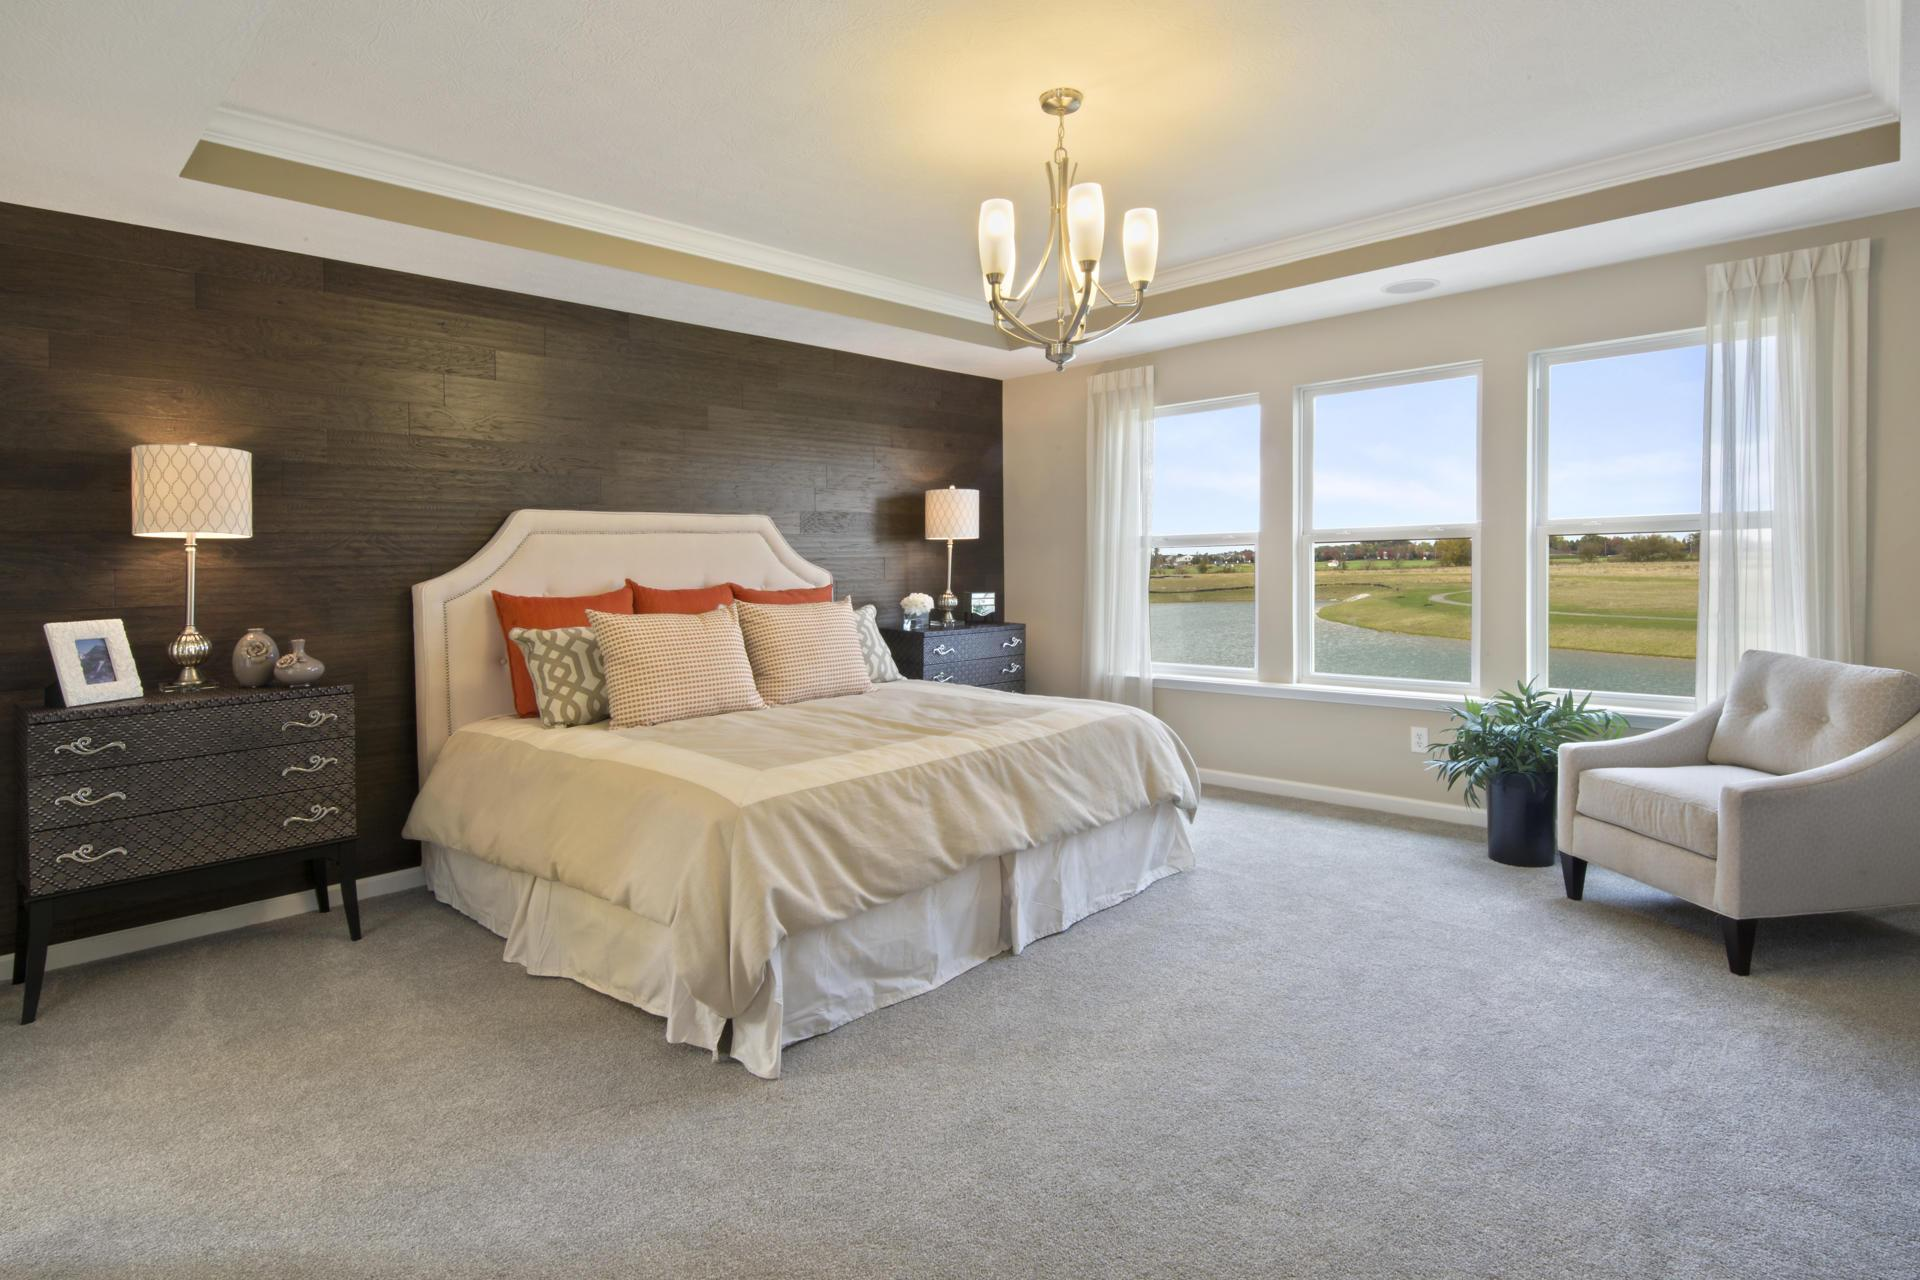 Bedroom featured in the Belleville By Drees Homes in Indianapolis, IN